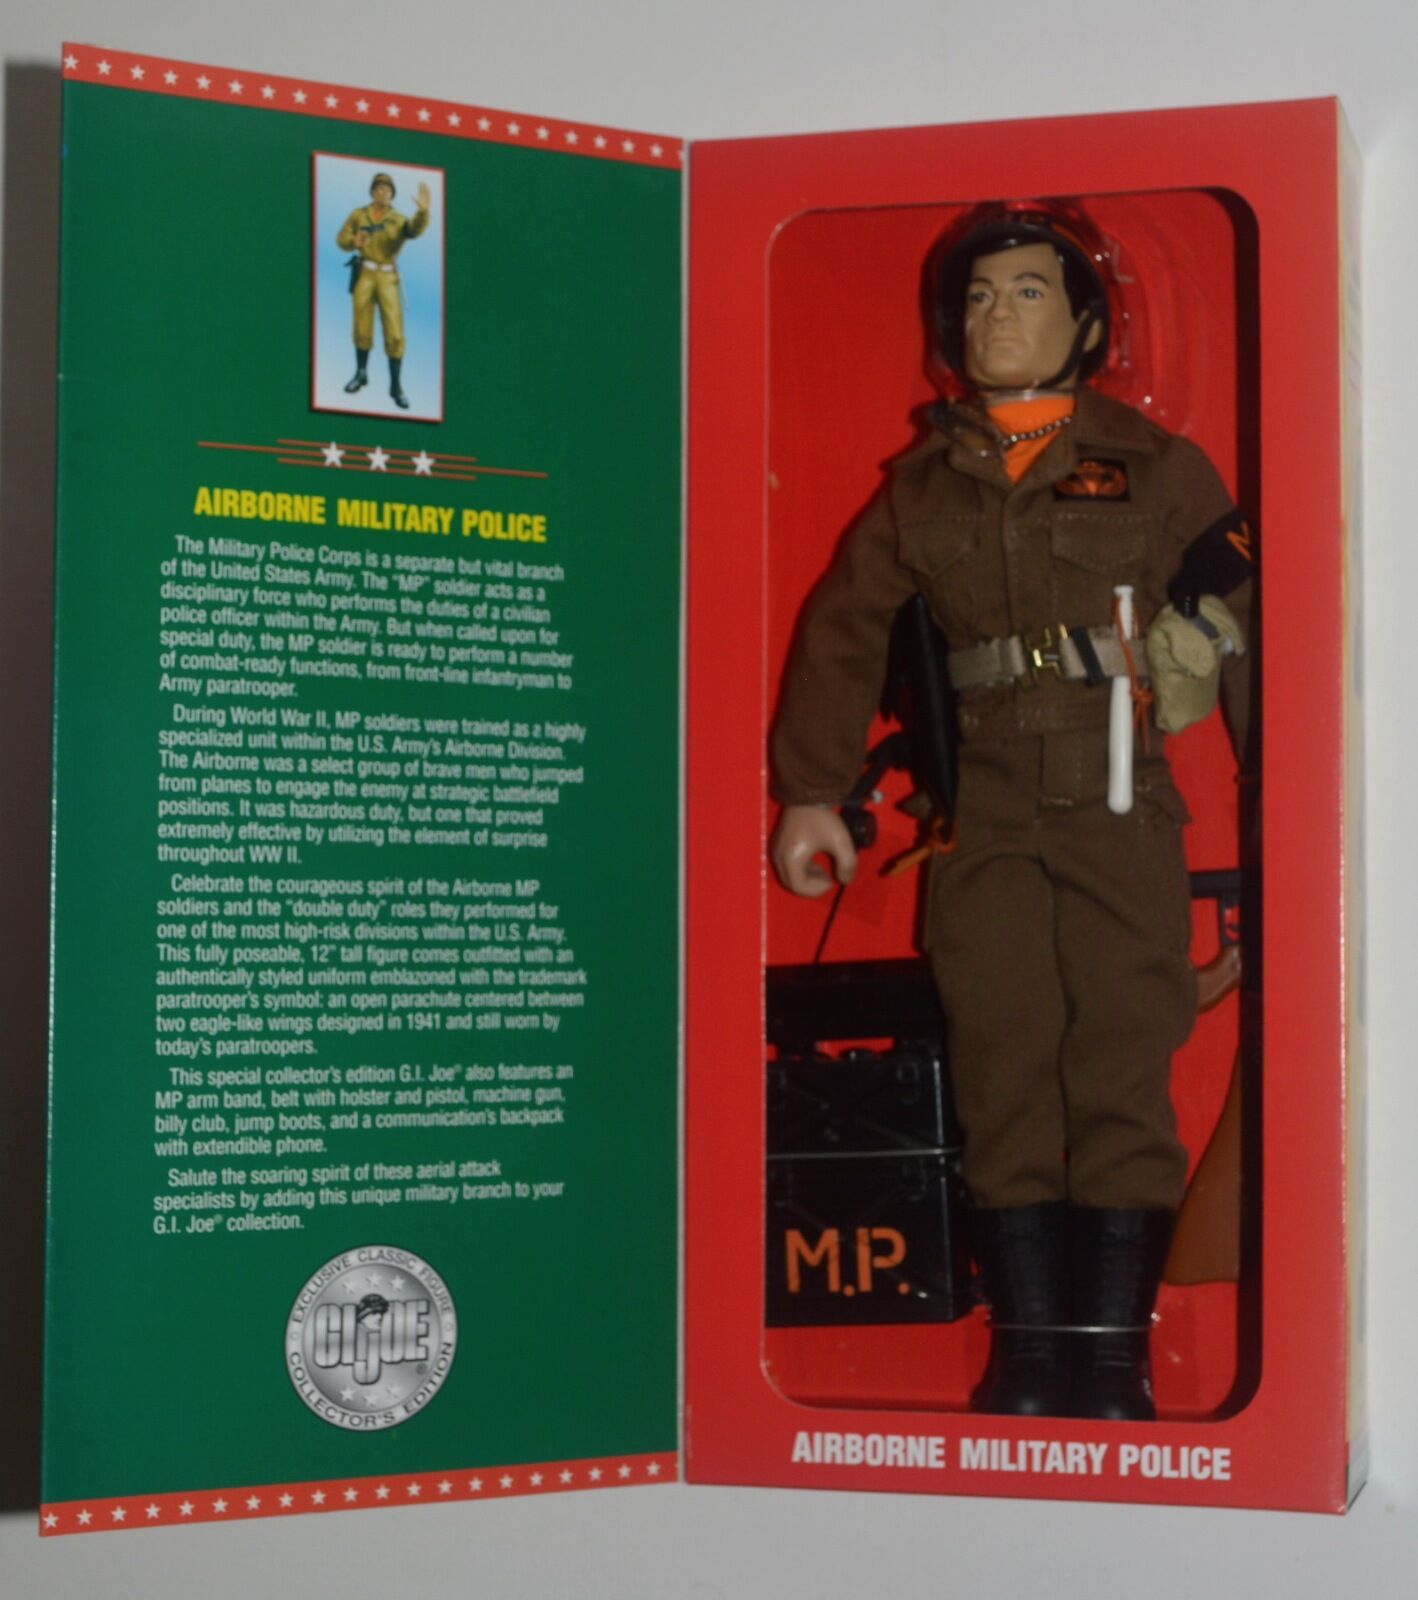 GI Joe AIRBORNE MILITARY POLICE Limited Edition Collector's Special 12  NRFB